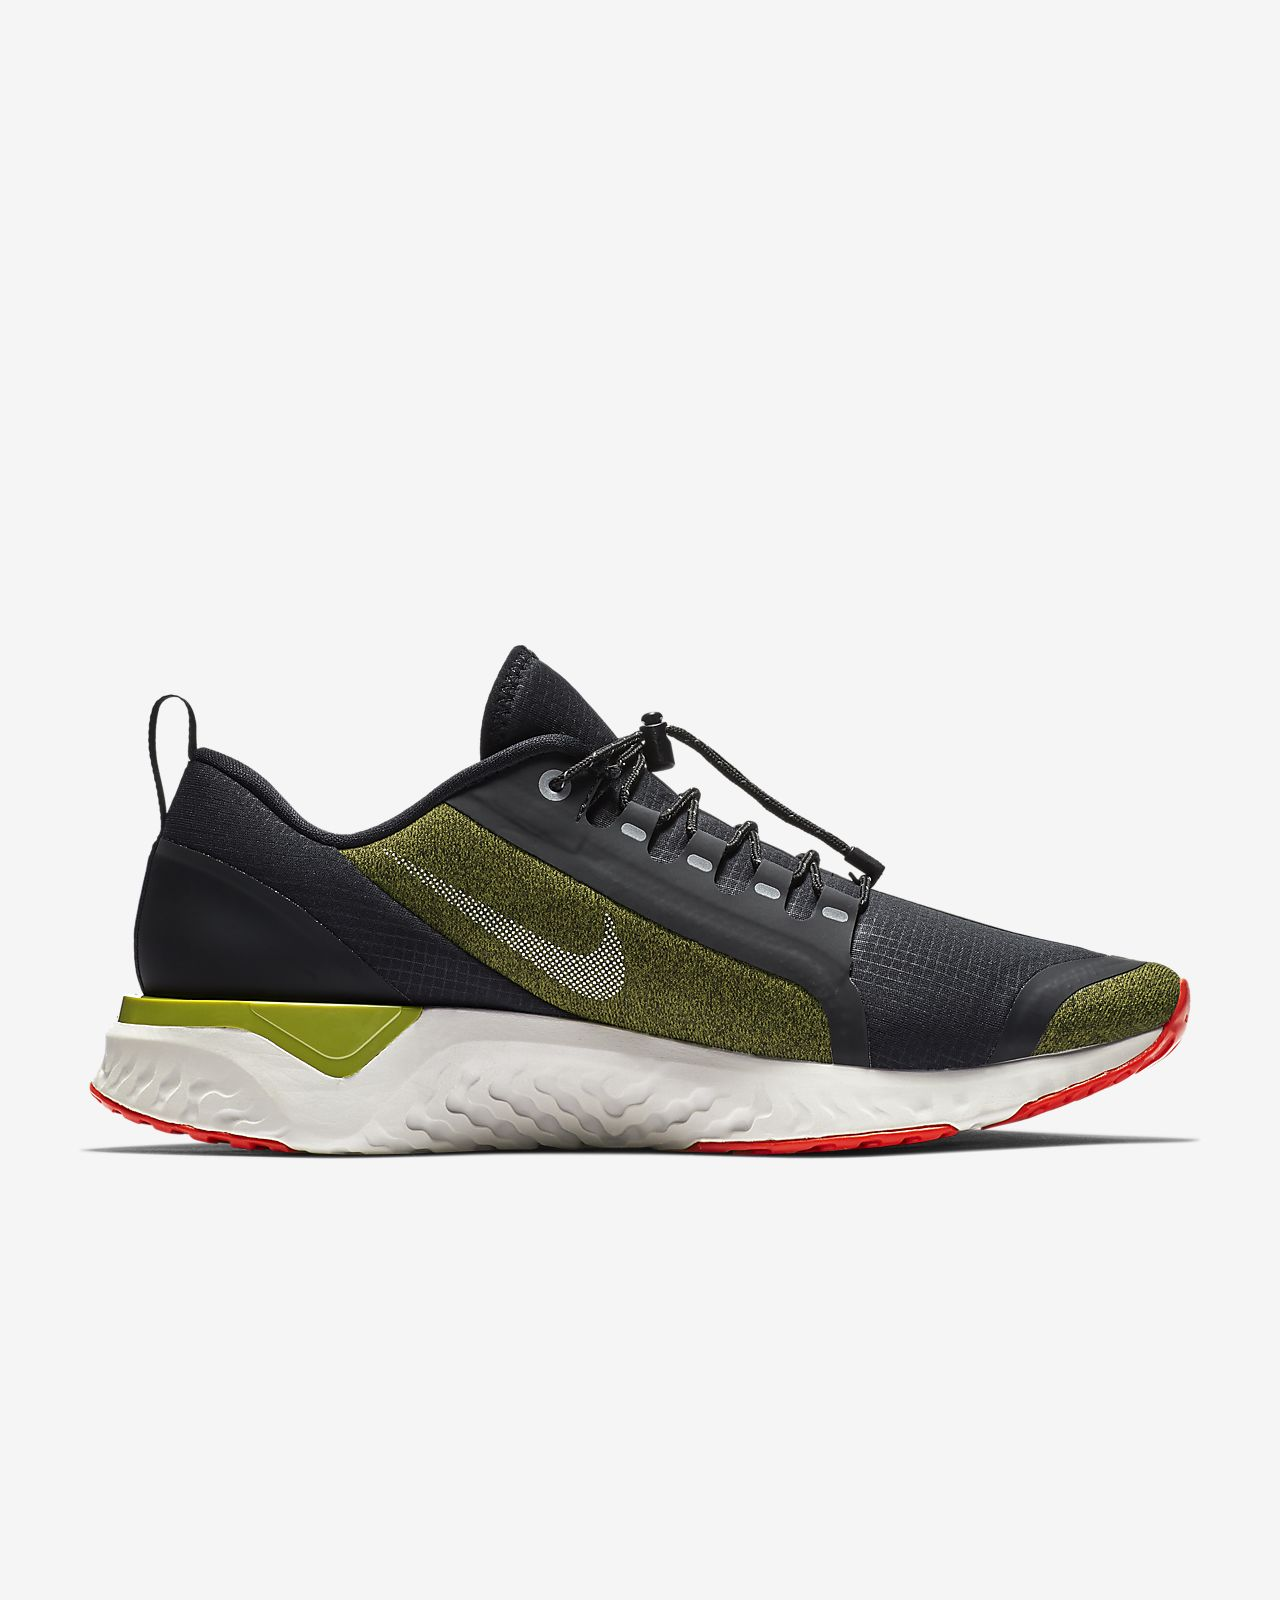 71f053cc80832 ... Calzado de running para hombre Nike Odyssey React Shield Water-Repellent